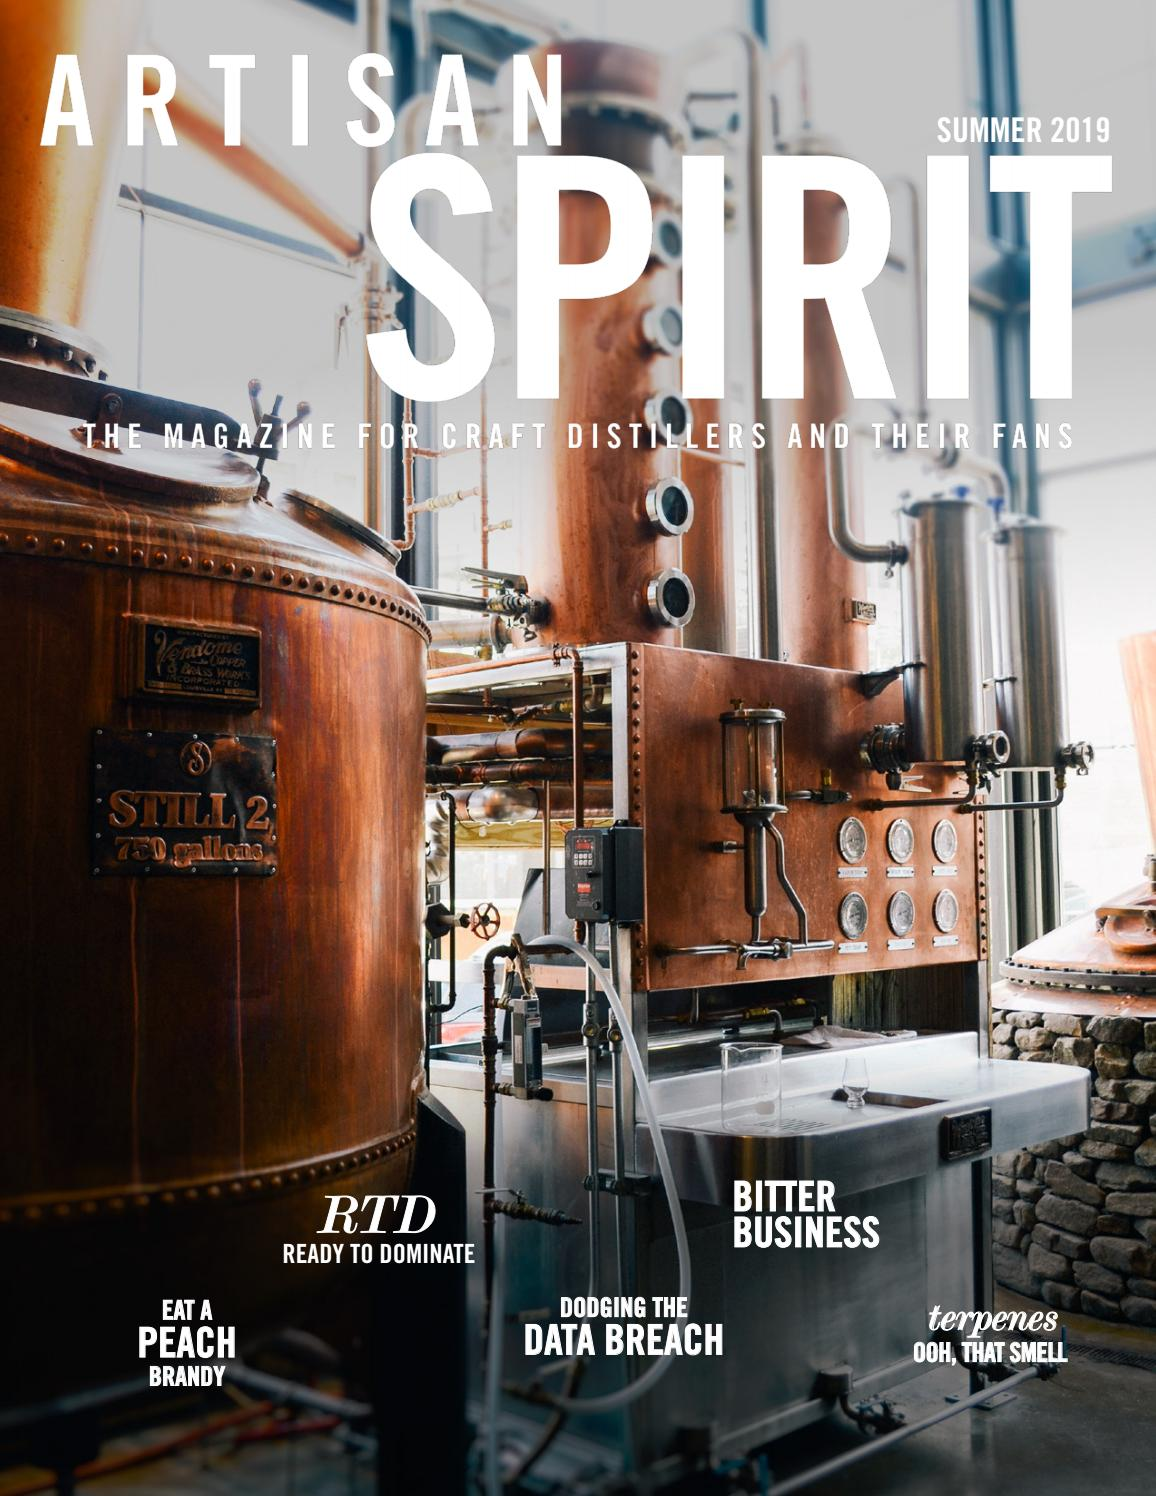 Artisan Spirit: Summer 2019 by Artisan Spirit Magazine - issuu